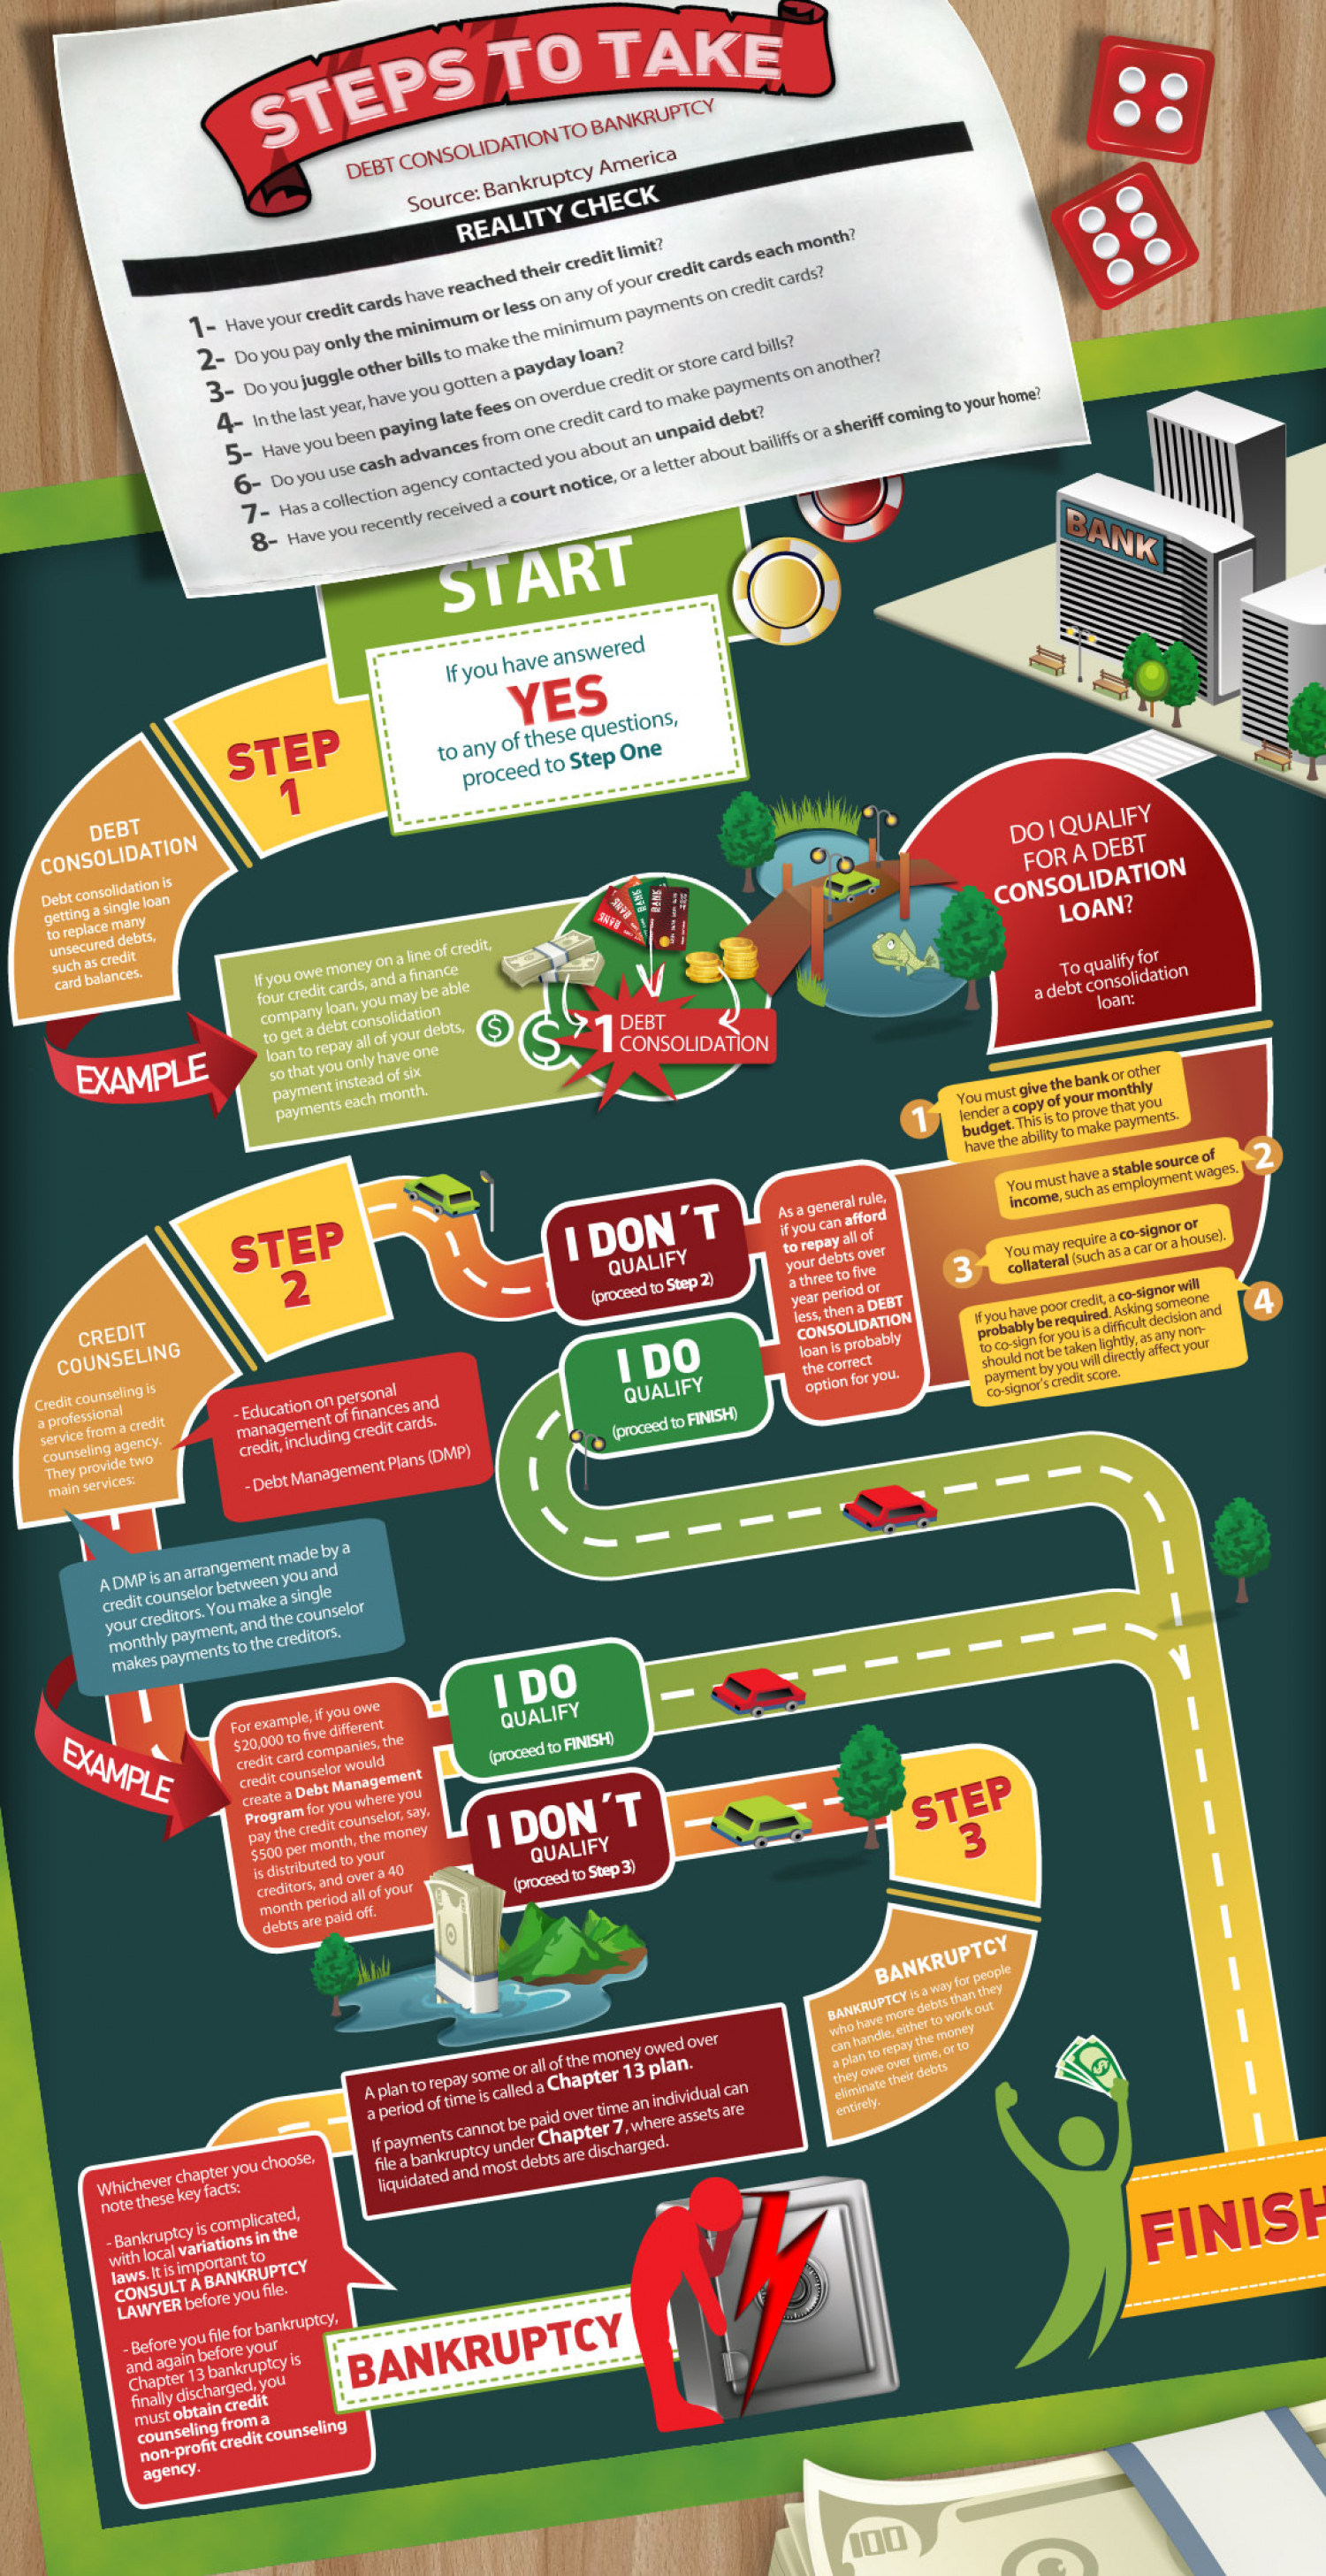 Debt Consolidation to Bankruptcy Infographic